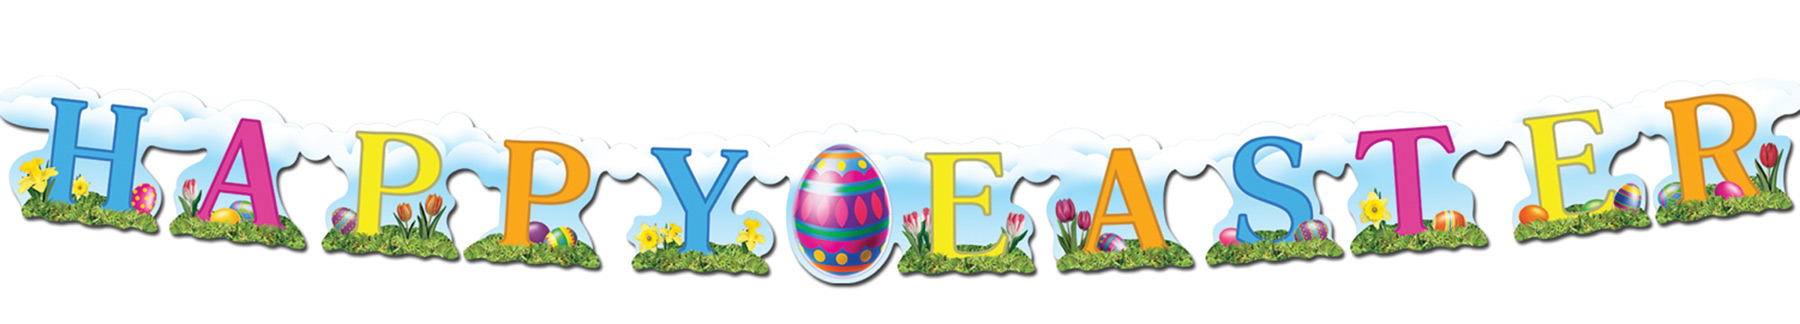 Featured Image for Happy Easter Streamer